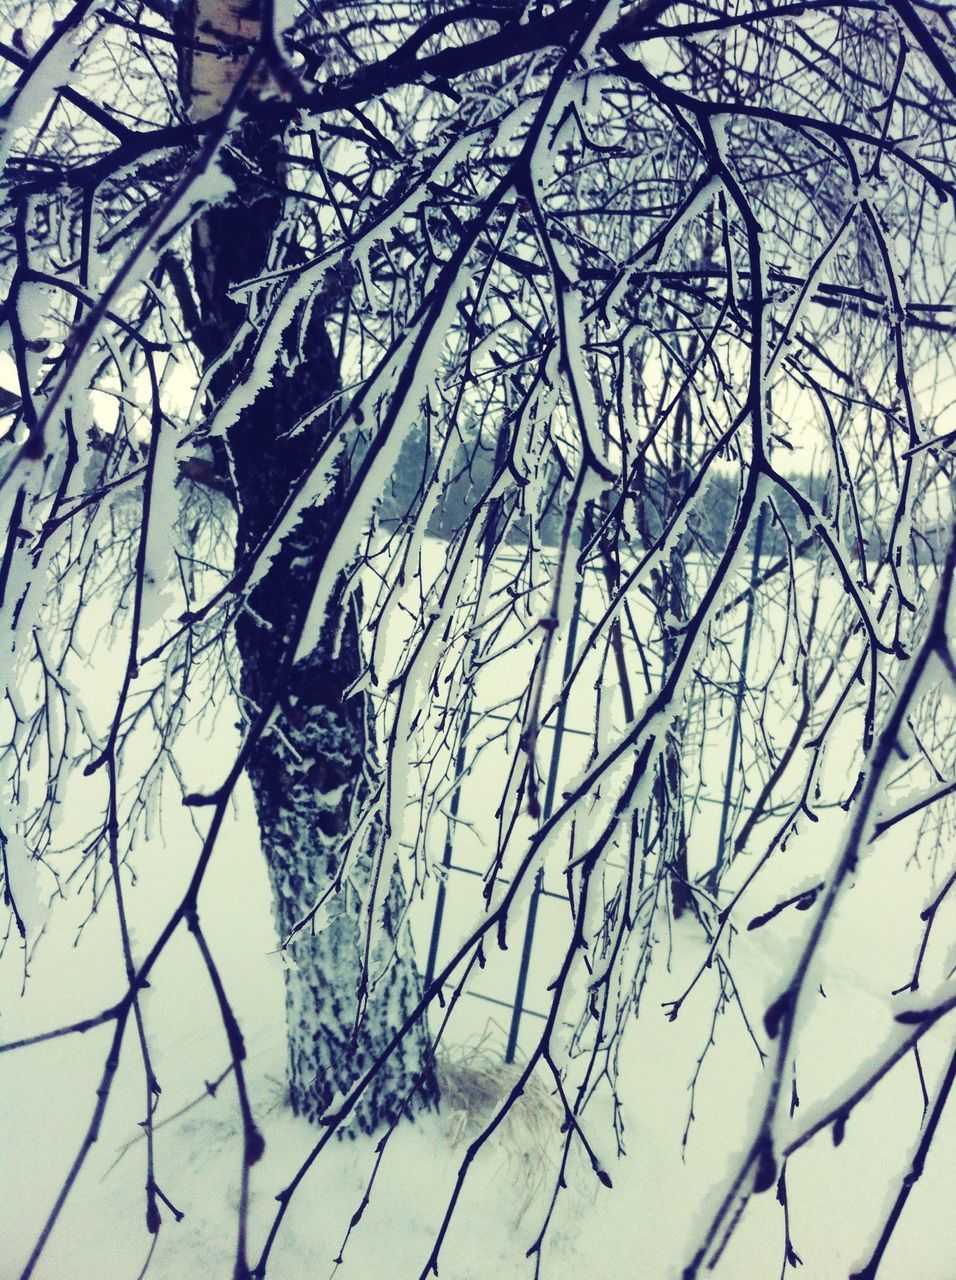 nature, winter, day, no people, cold temperature, outdoors, snow, beauty in nature, backgrounds, branch, bare tree, tree, close-up